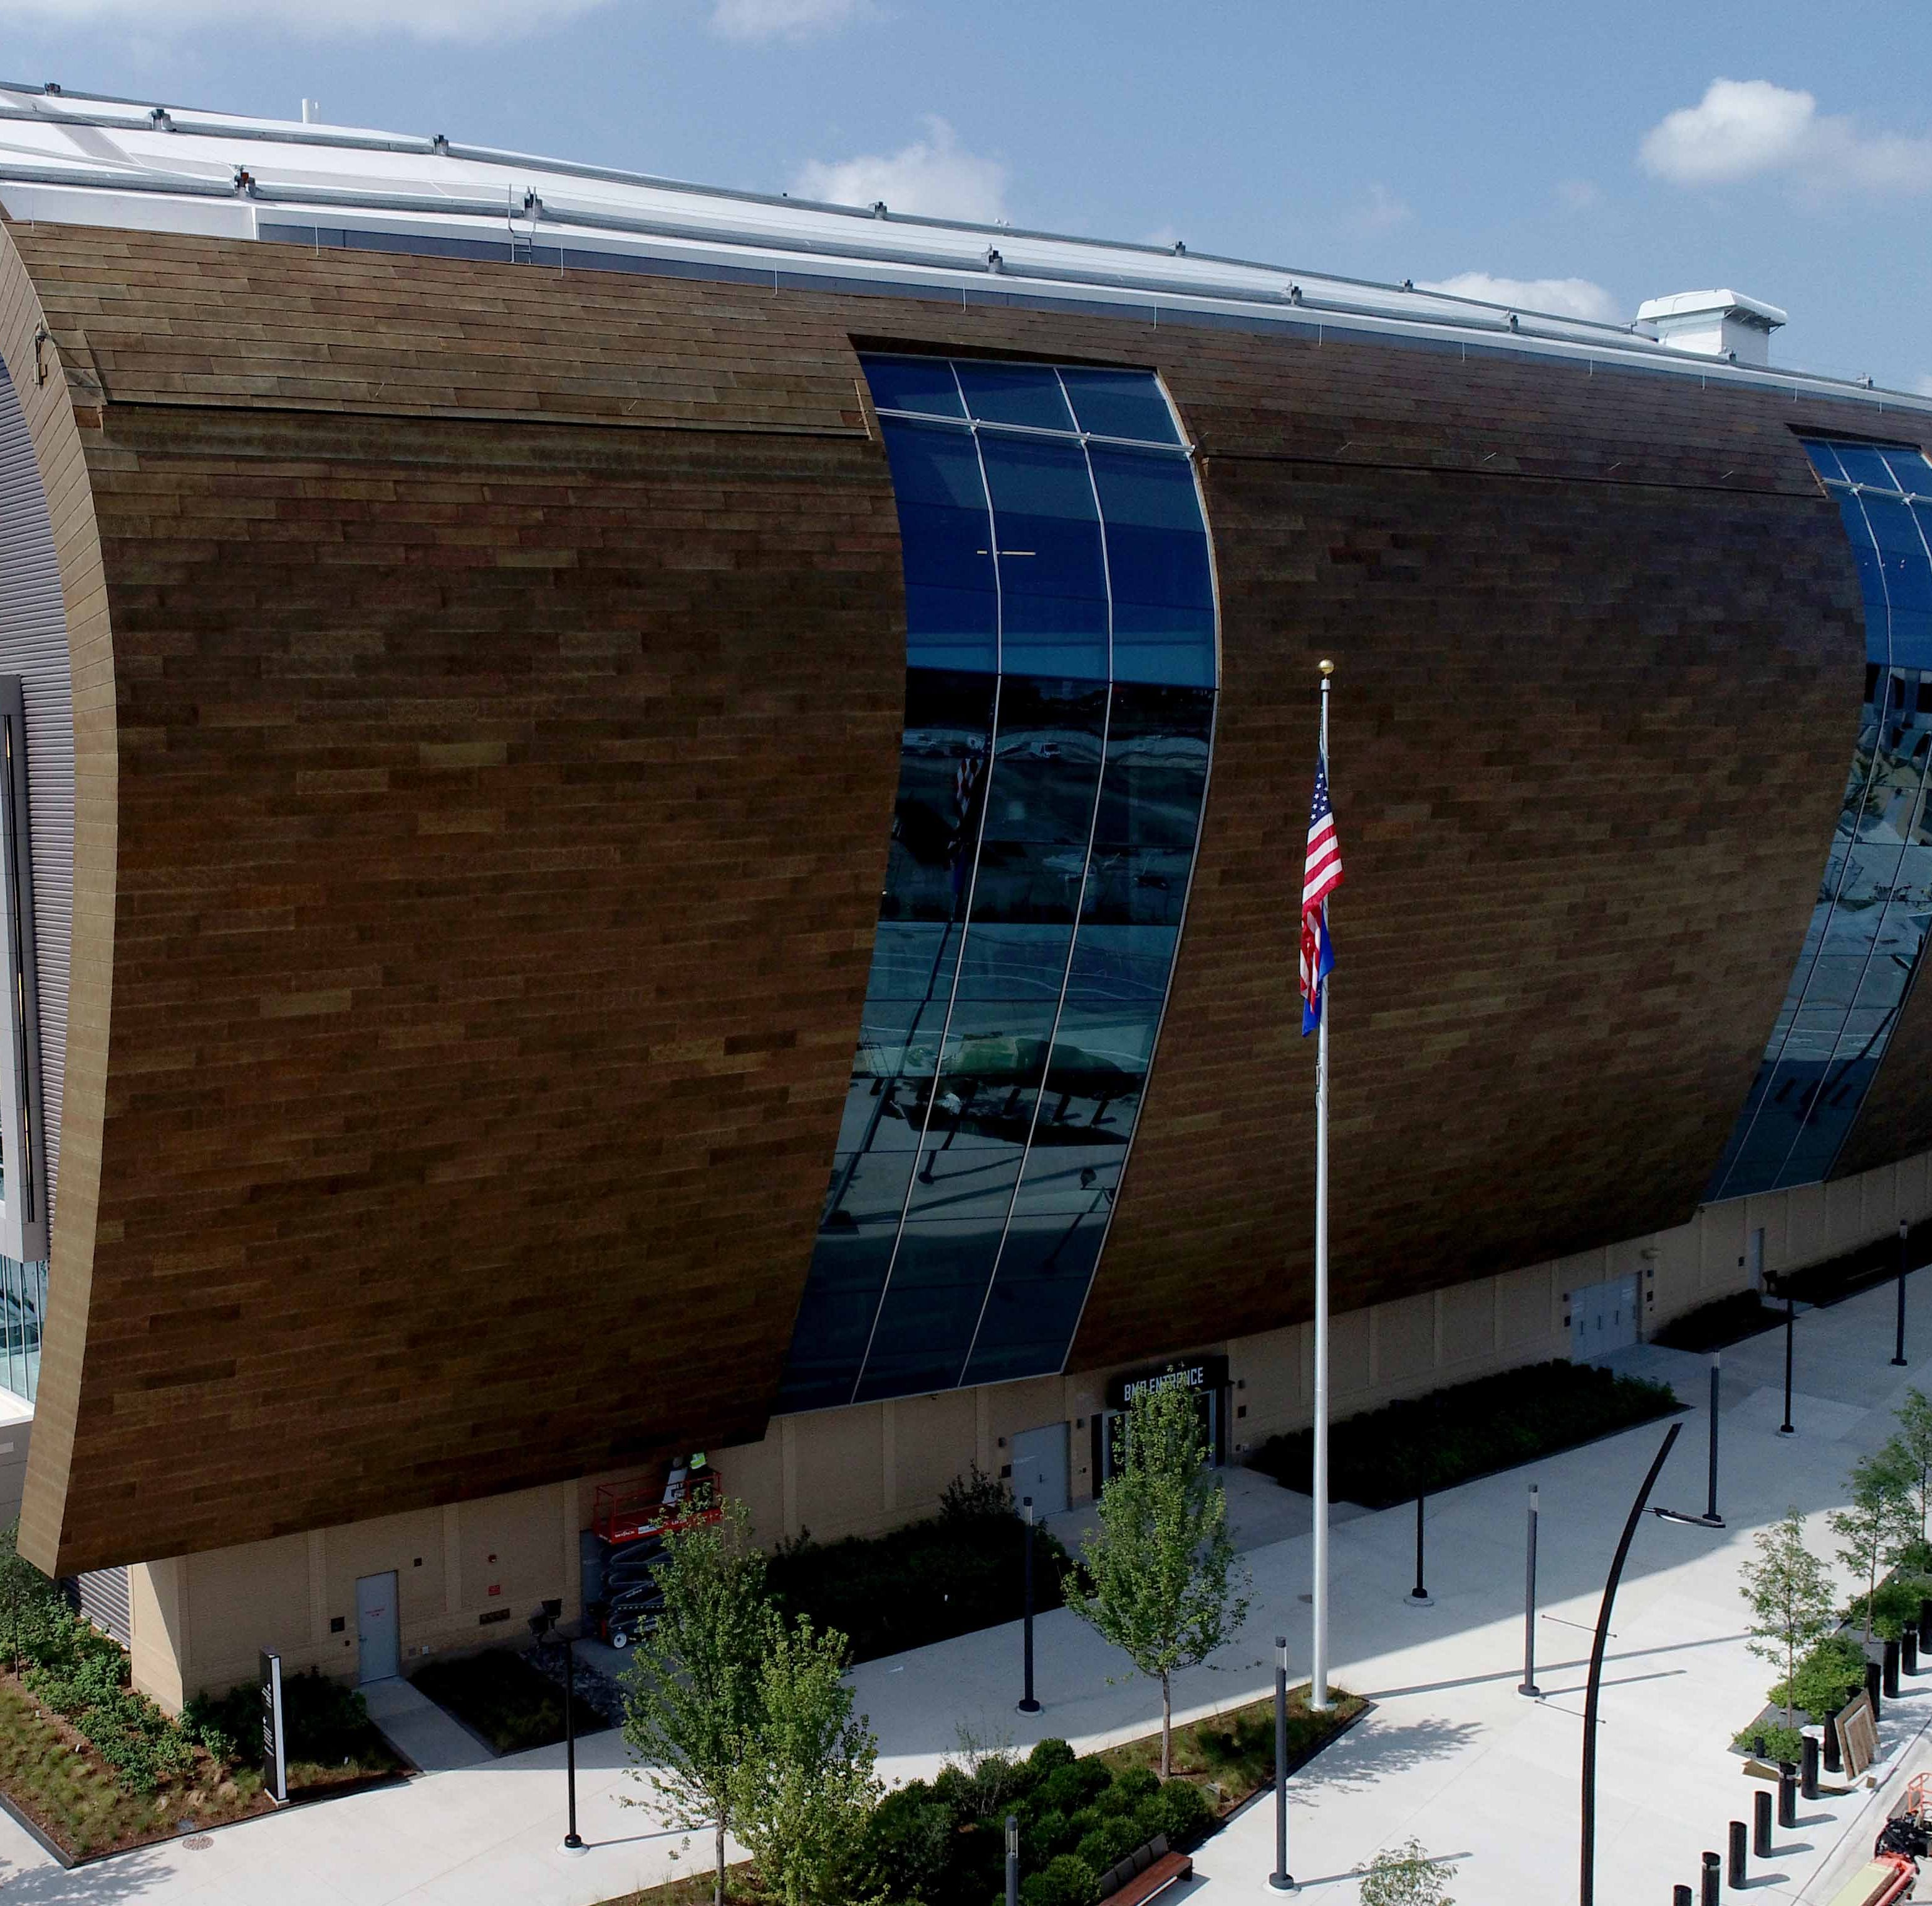 With new arena Fiserv Forum, Milwaukee gears up for a massive fall concert season